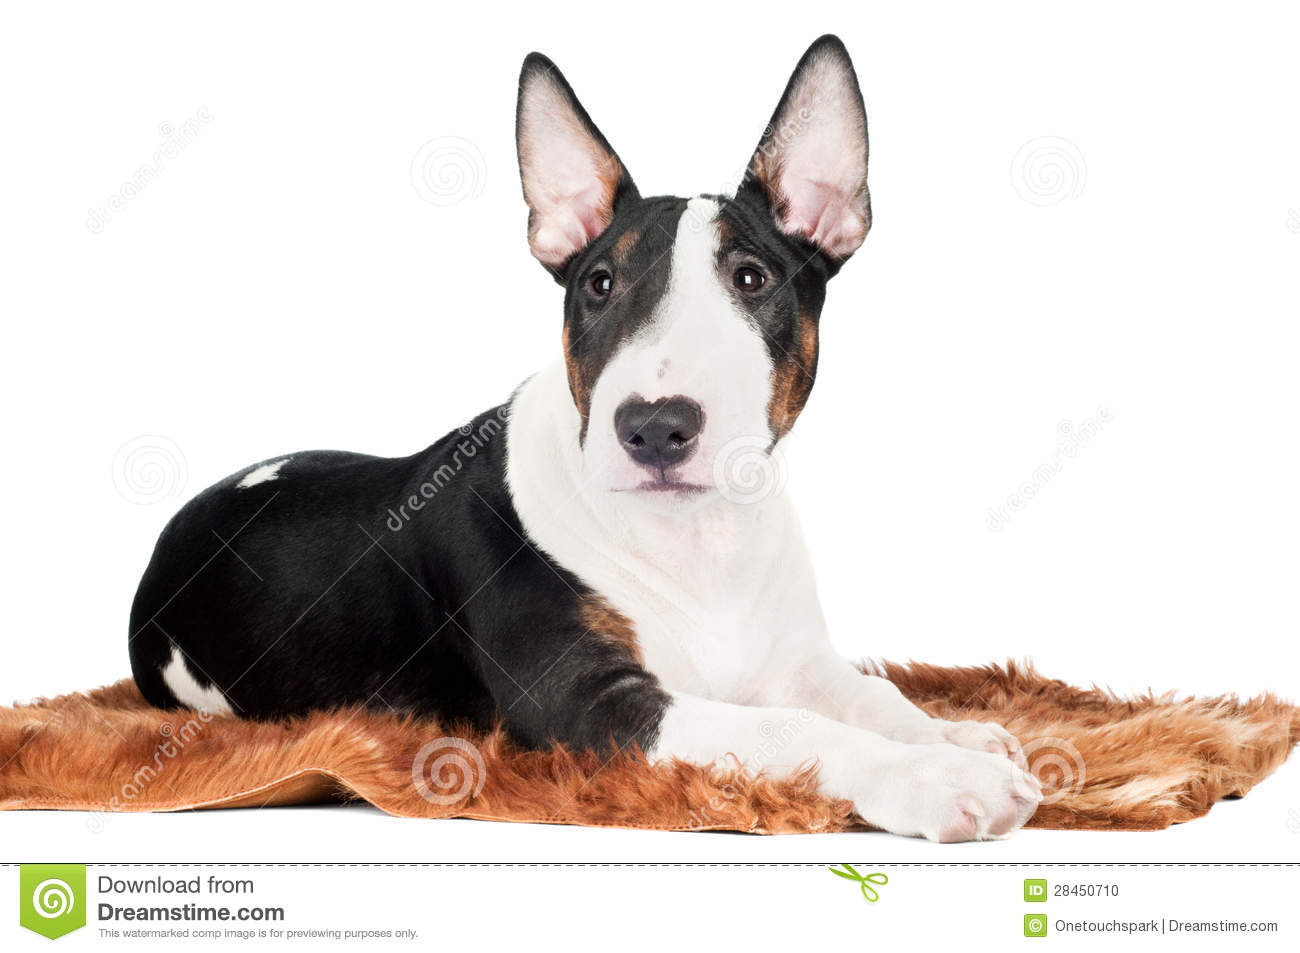 English Bull Terrier Puppy Lying Down Funny Stock Photo - Image ...